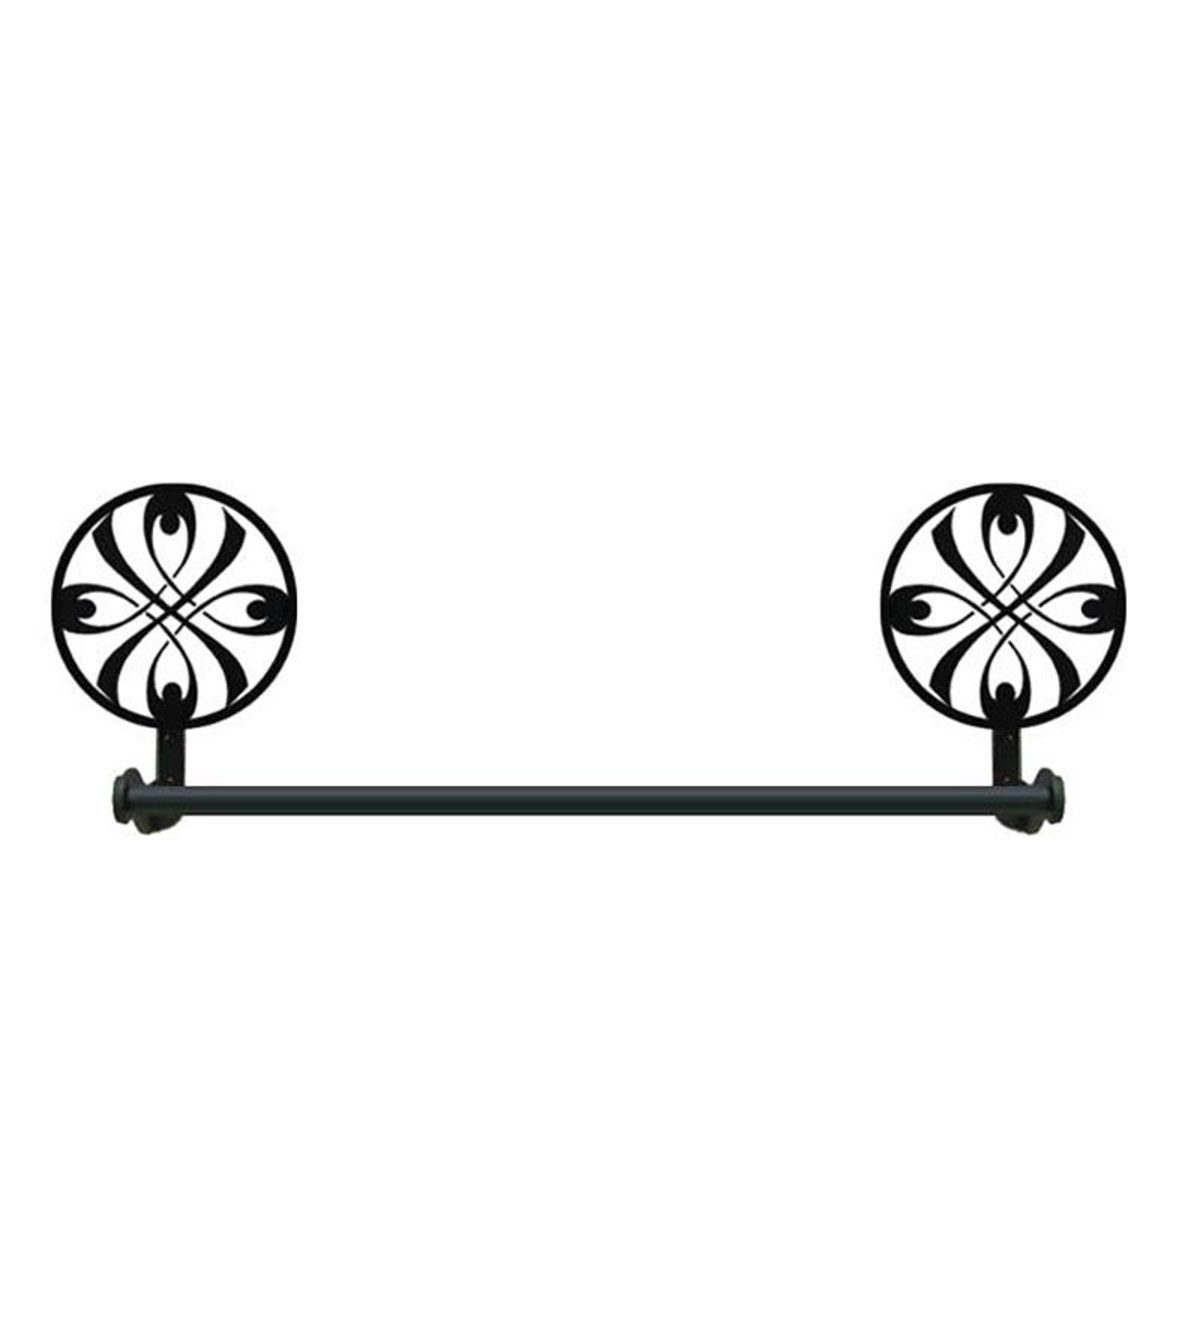 USA-Made Wrought Iron Small Decorative Towel Bar